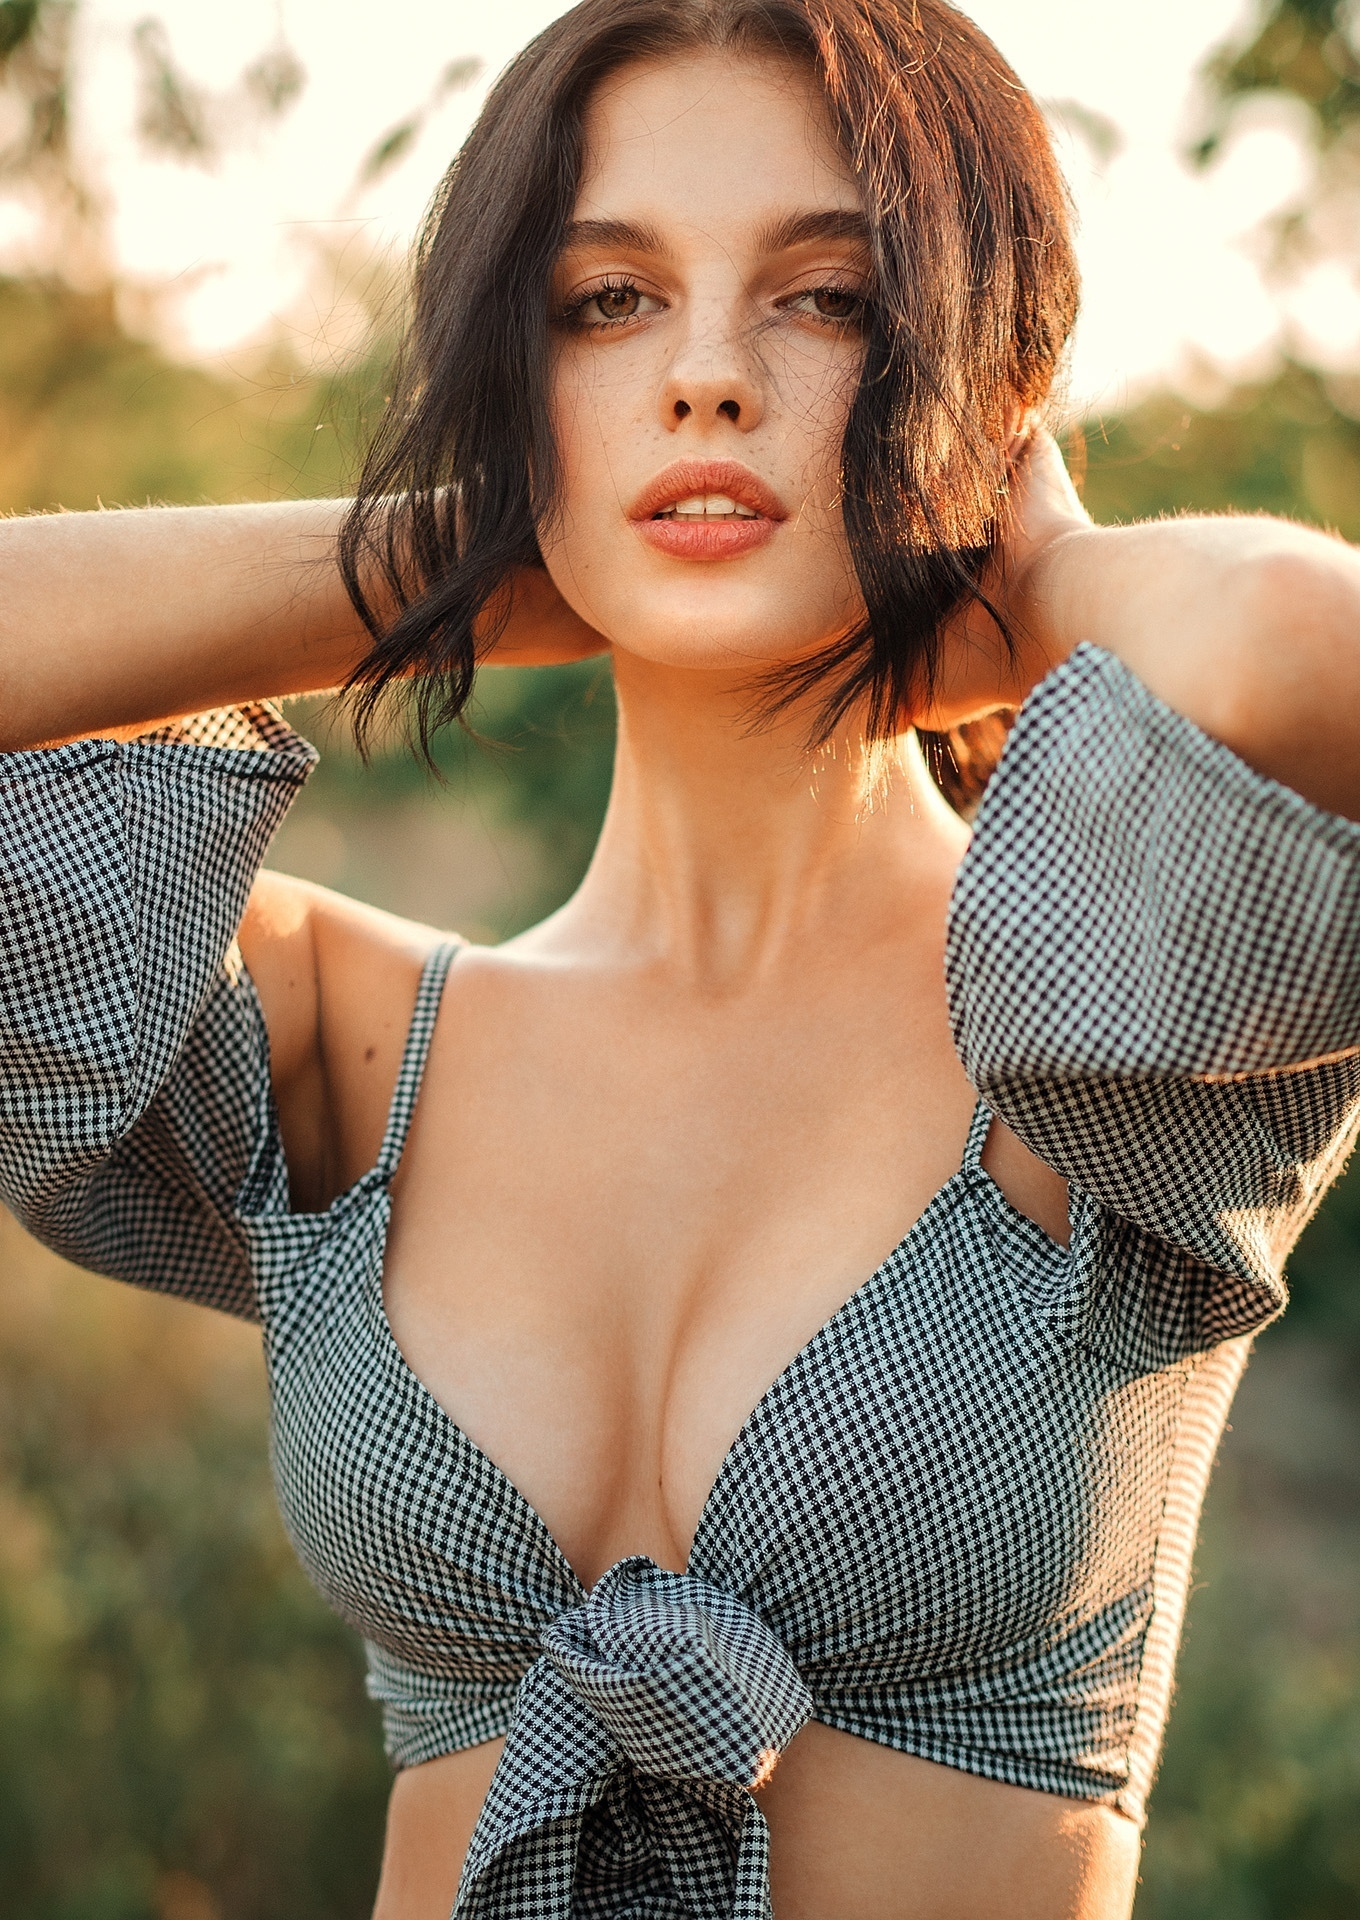 Gallery Cleavage Megan Irminger  nudes (26 pictures), YouTube, cleavage